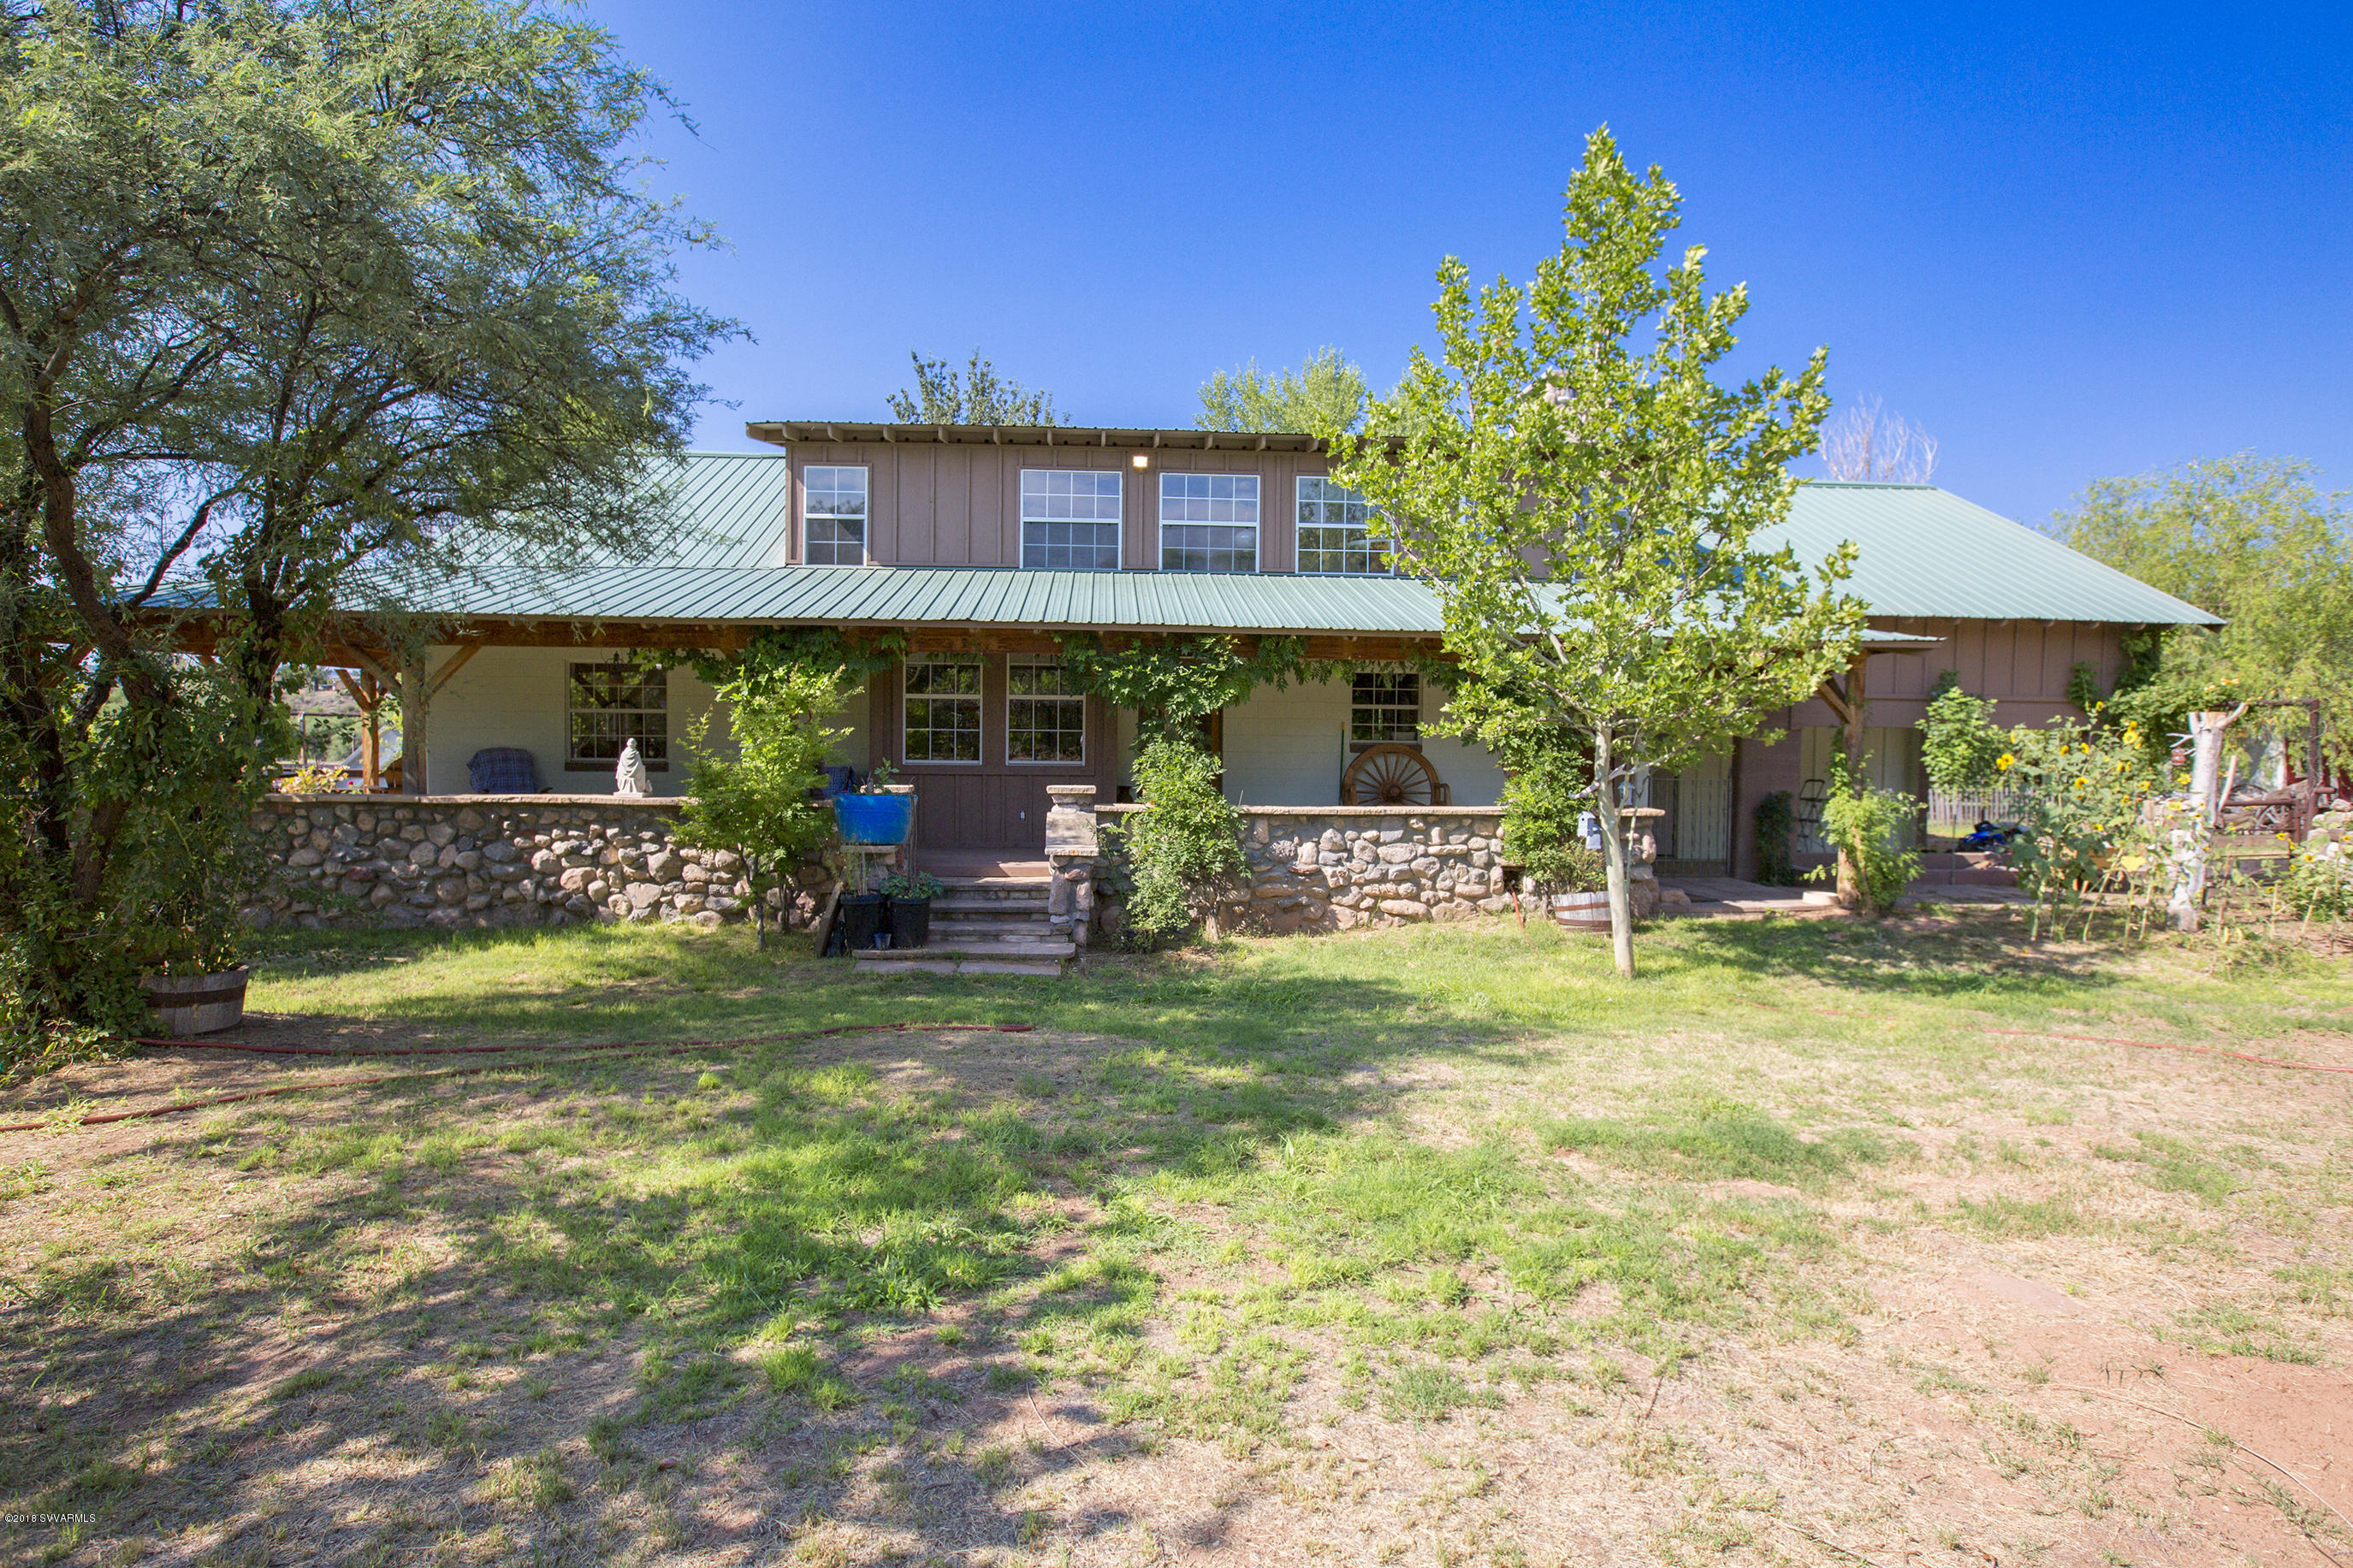 2030 S Hogan Lane Cottonwood, AZ 86326